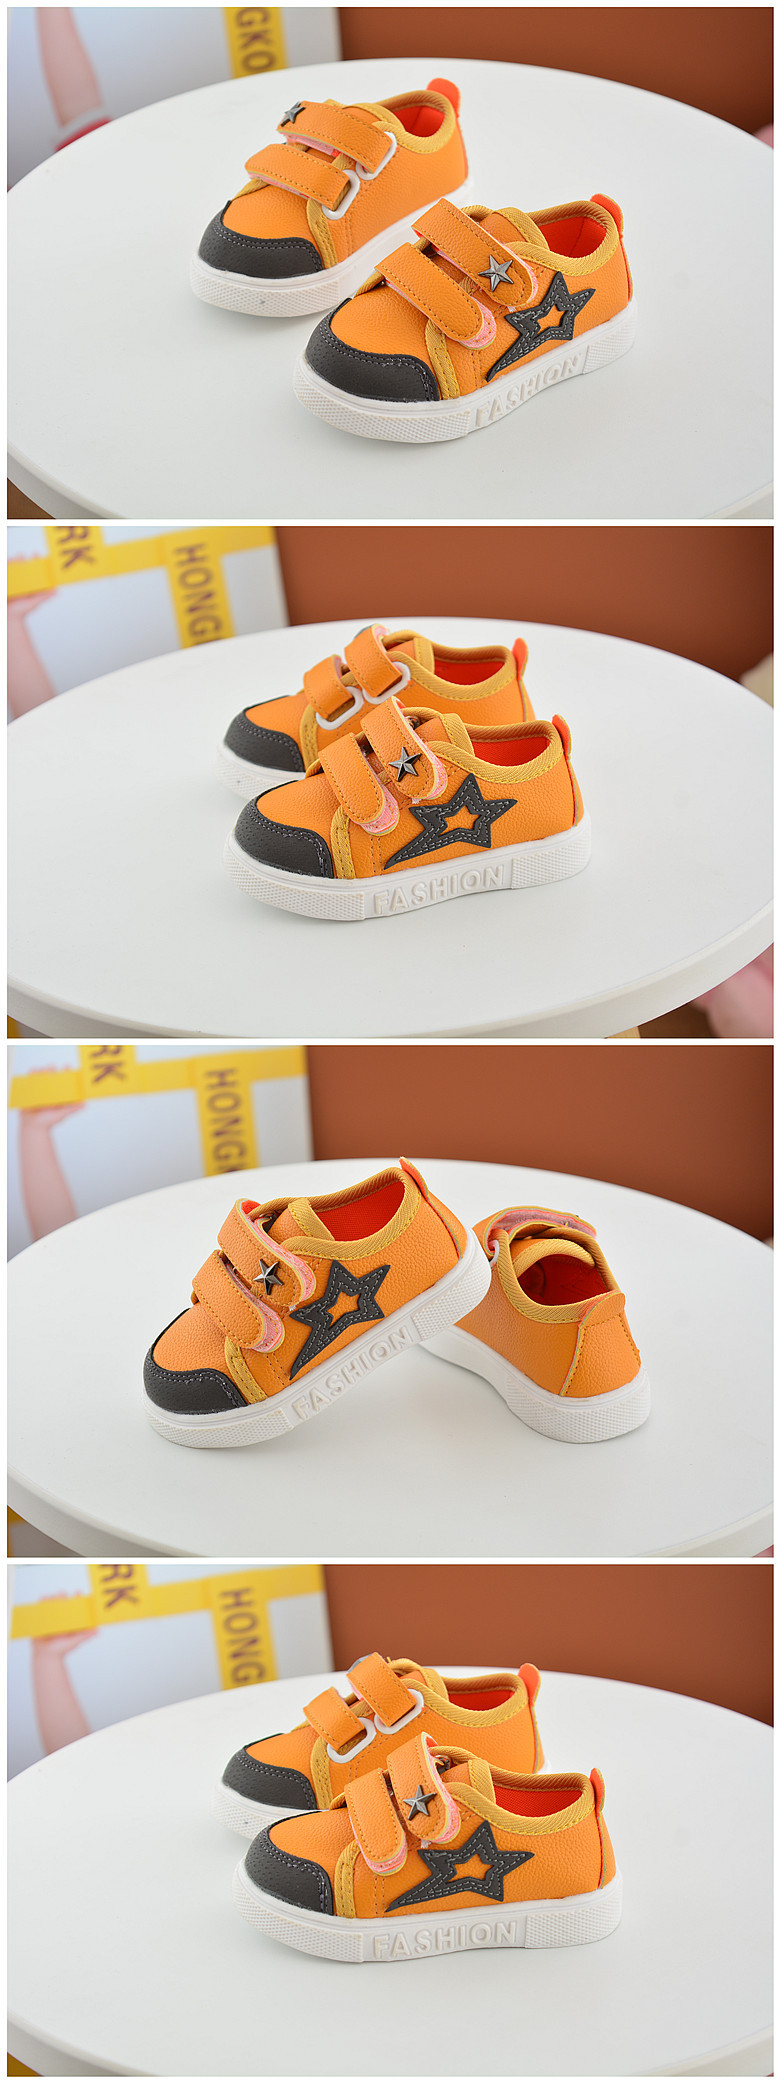 16 New Small Children Canvas Shoes For Kids Baby Boys Canvas Star Shoes Girls Flat Sneakers Low Casual School Students Shoes 5